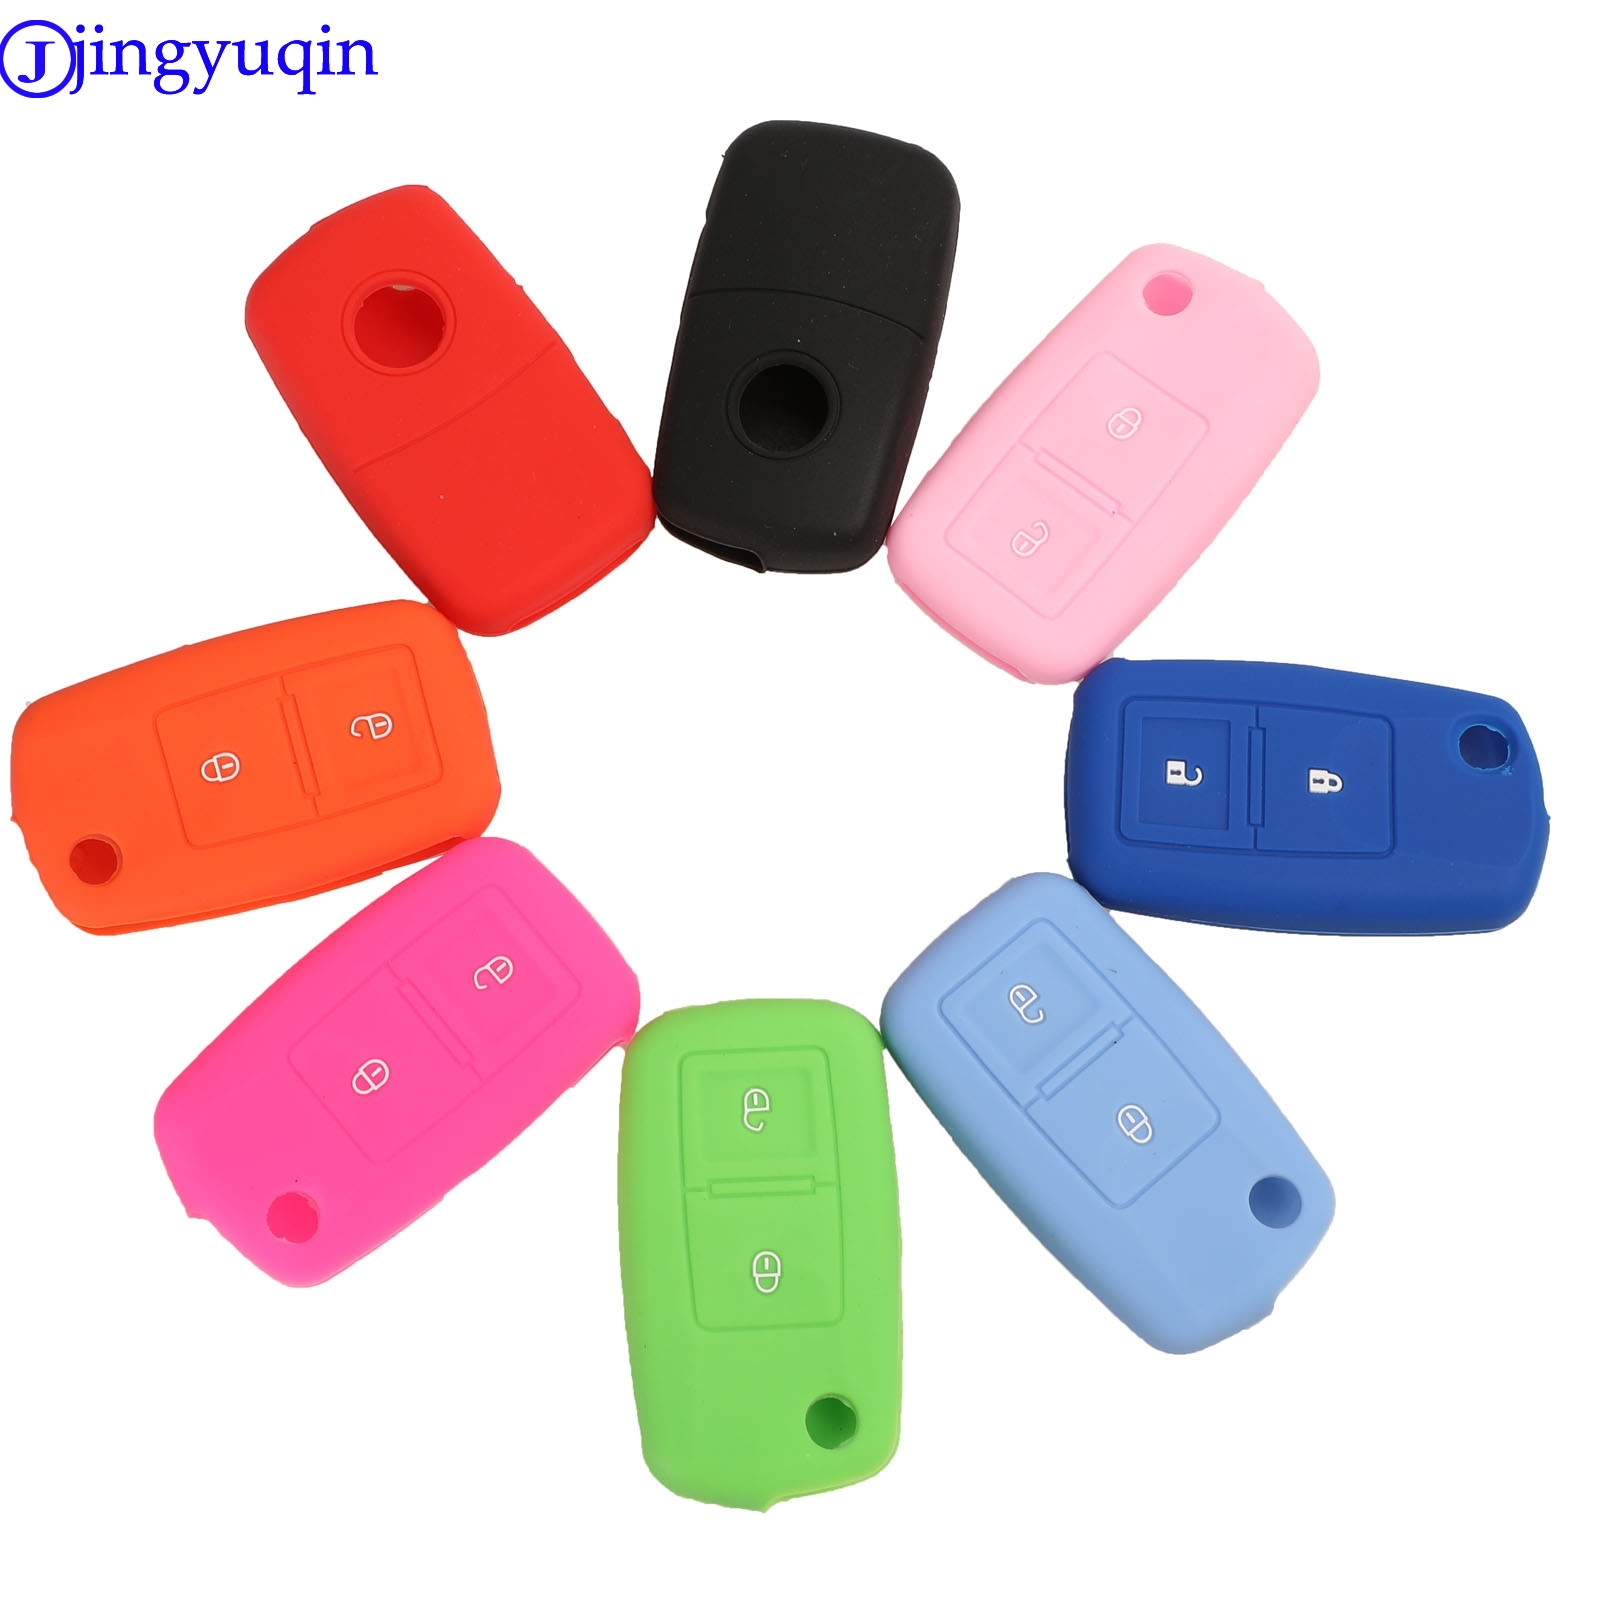 Jingyuqin 2 Buttons Silicone Flip Key Case Cover For Vw MK4 Seat Altea Alhambra Ibiza Polo Golf 4 5 6 Transporter Amarok Sharan